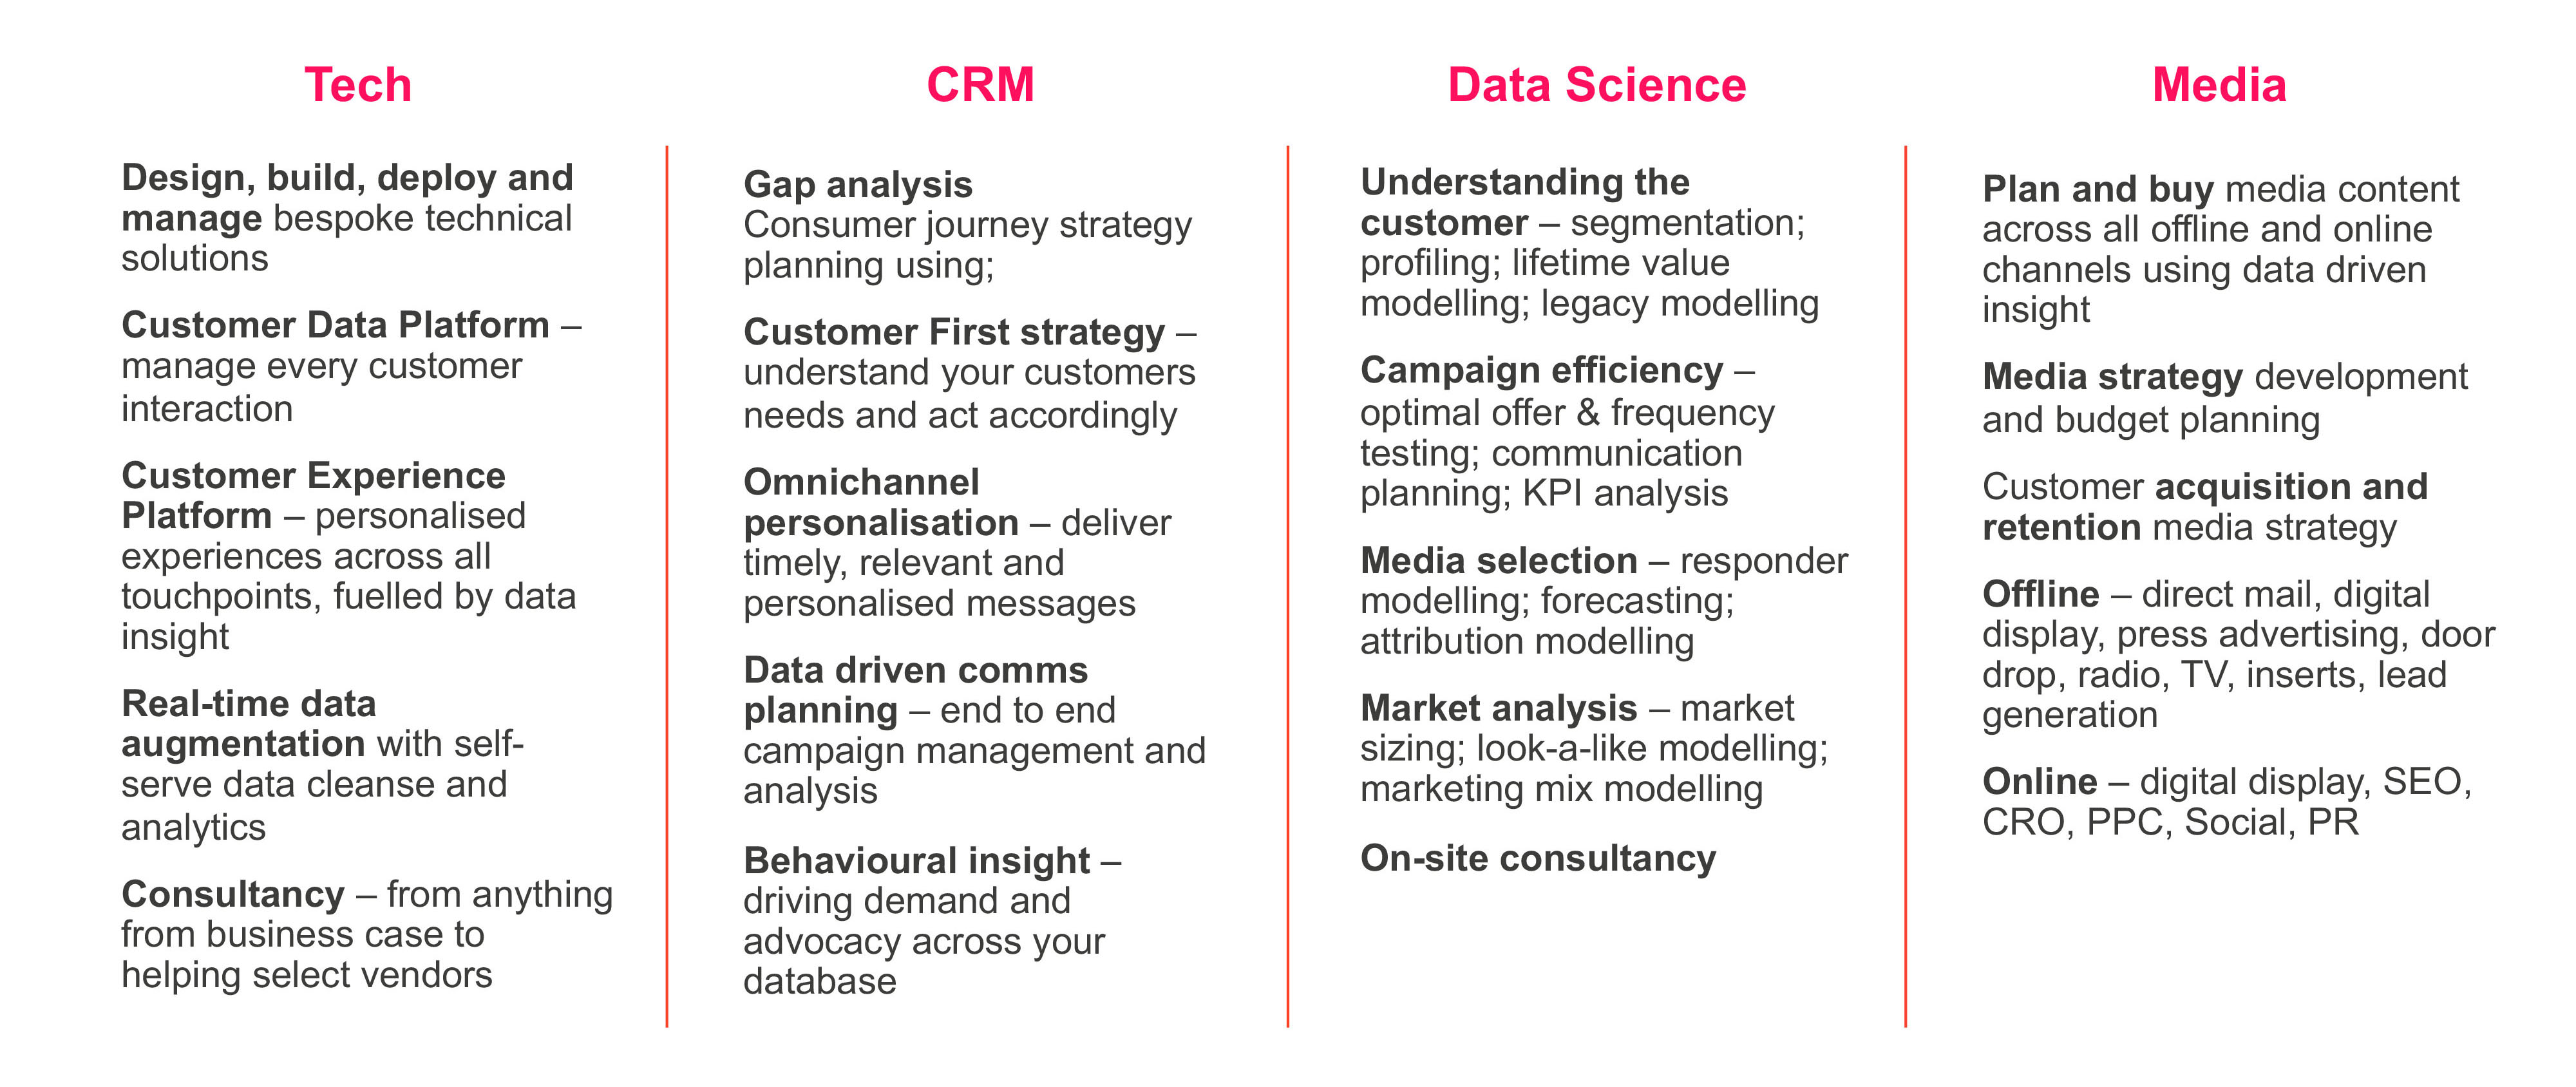 Table of multi-channel strategy elements categorised by tech, CRM, data science and media